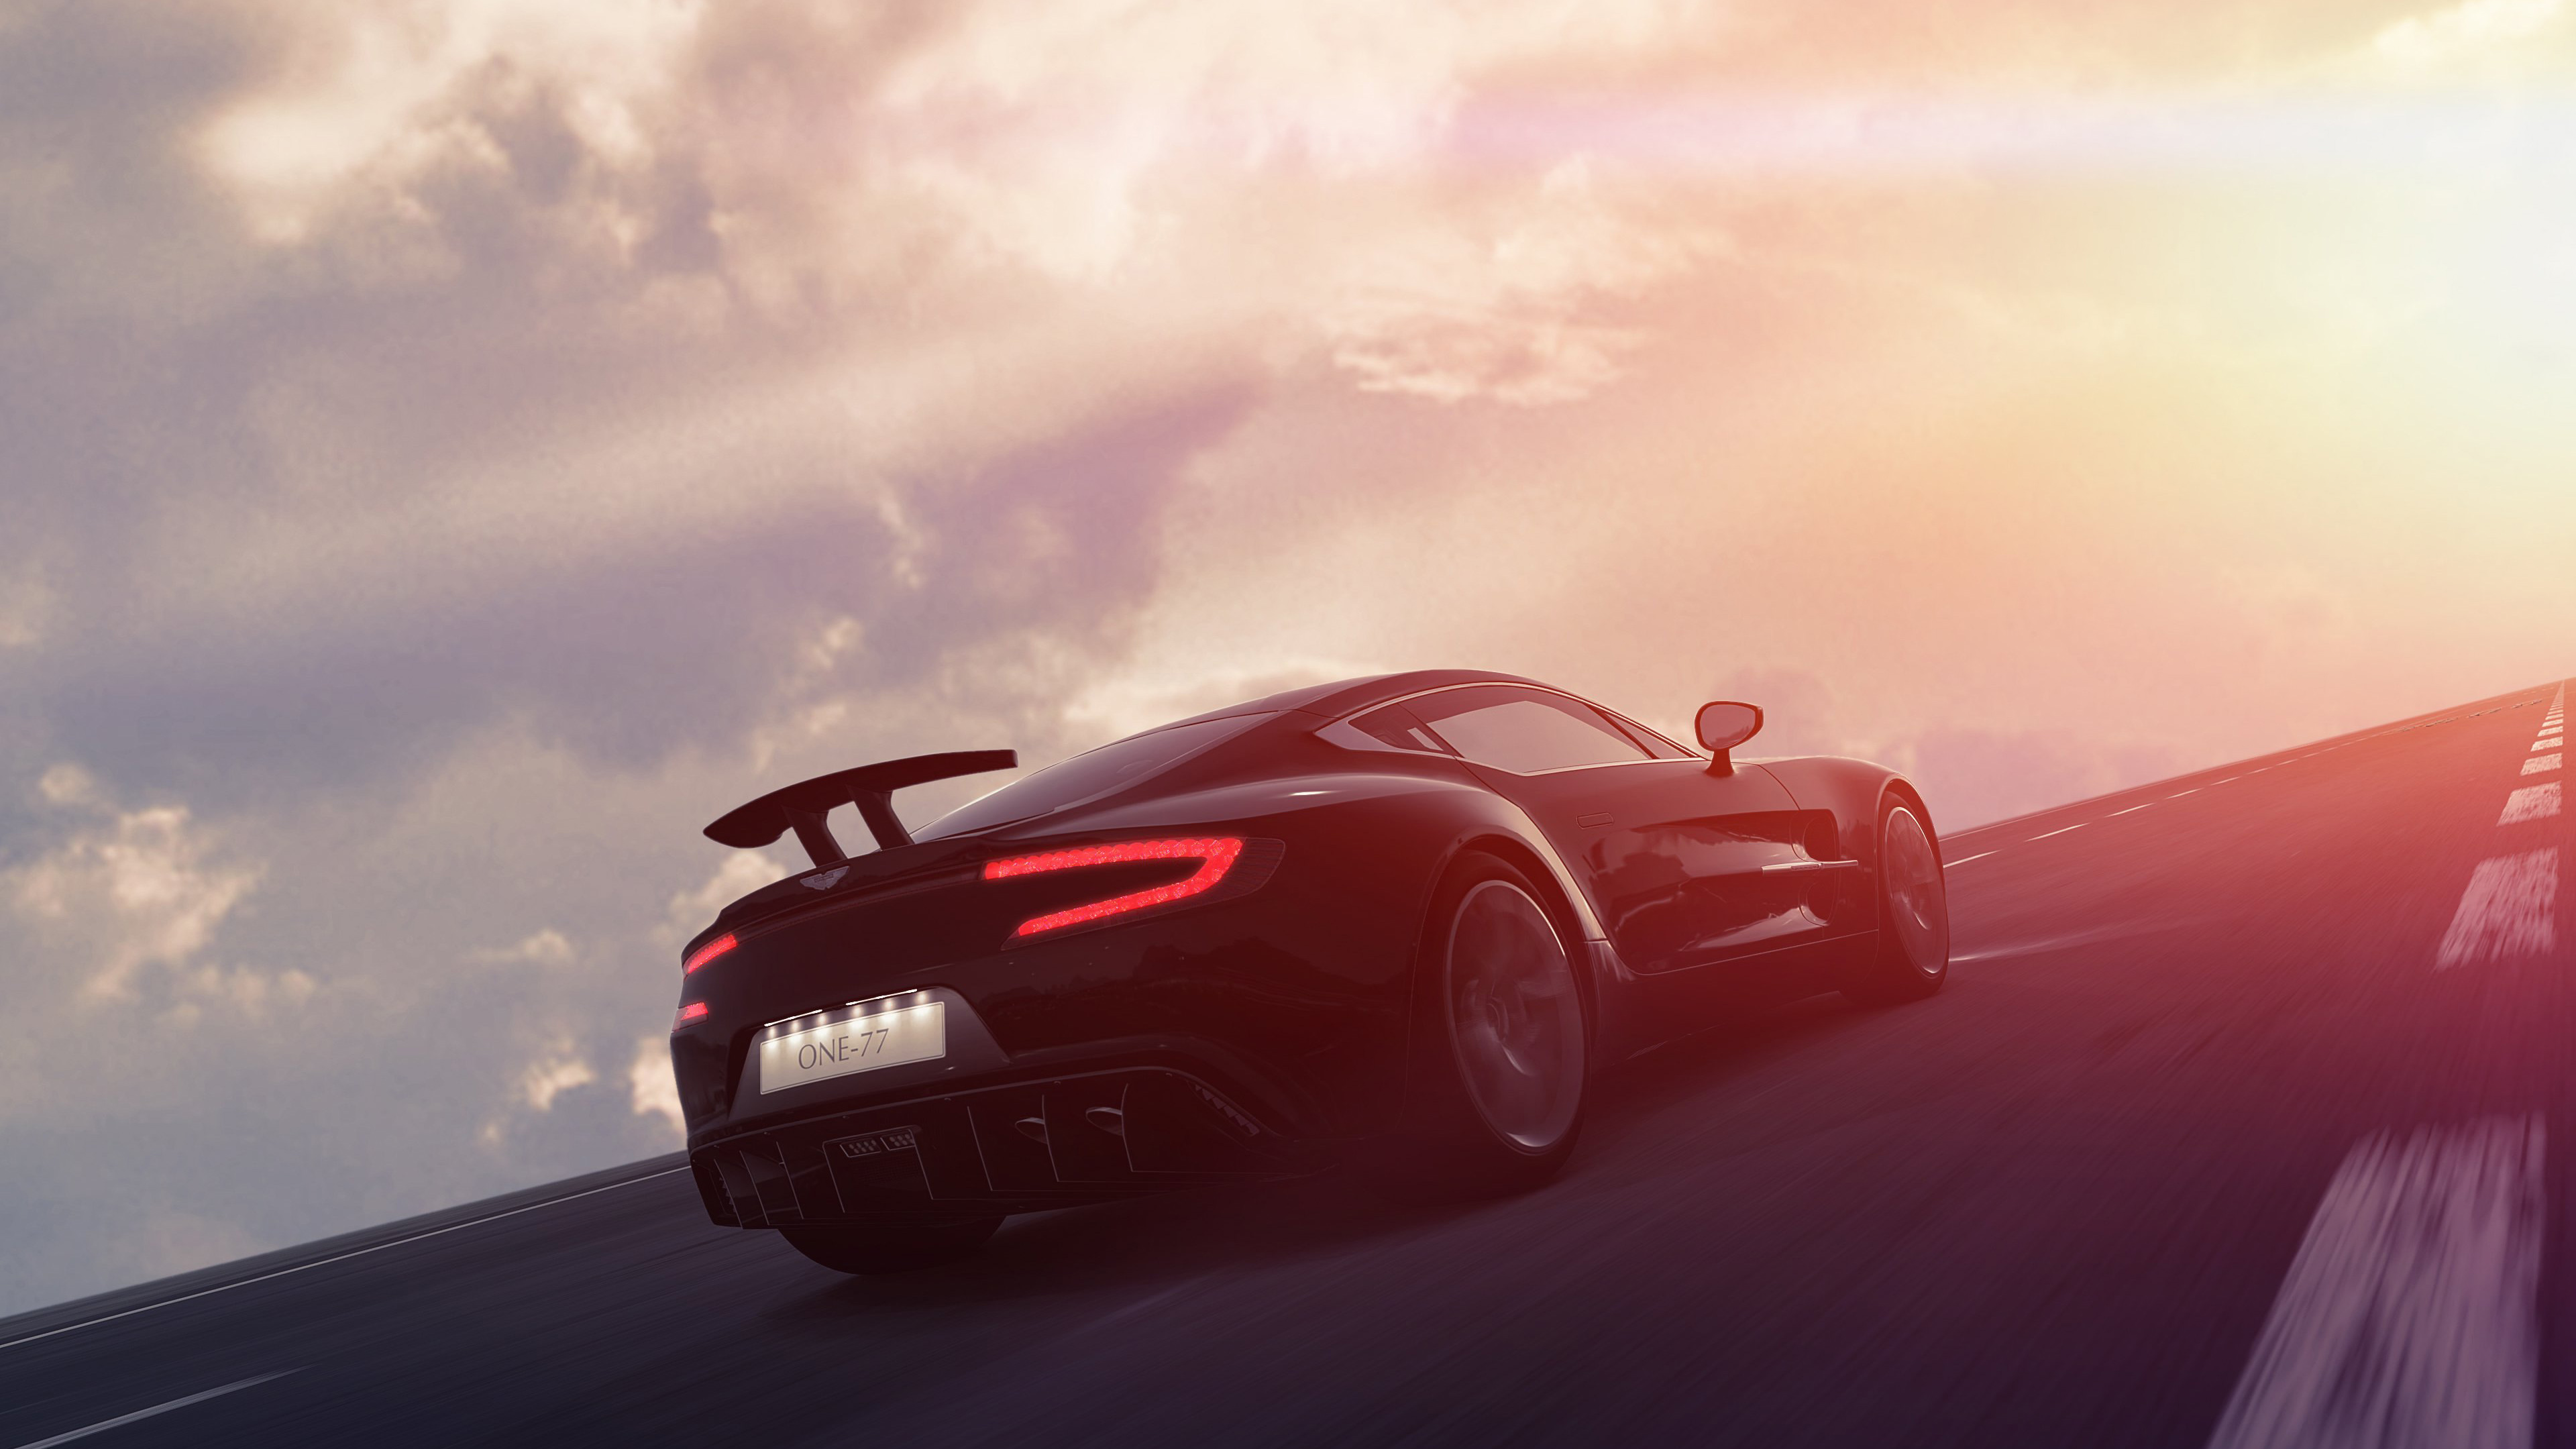 aston martin one 77 hd cars 4k wallpapers images